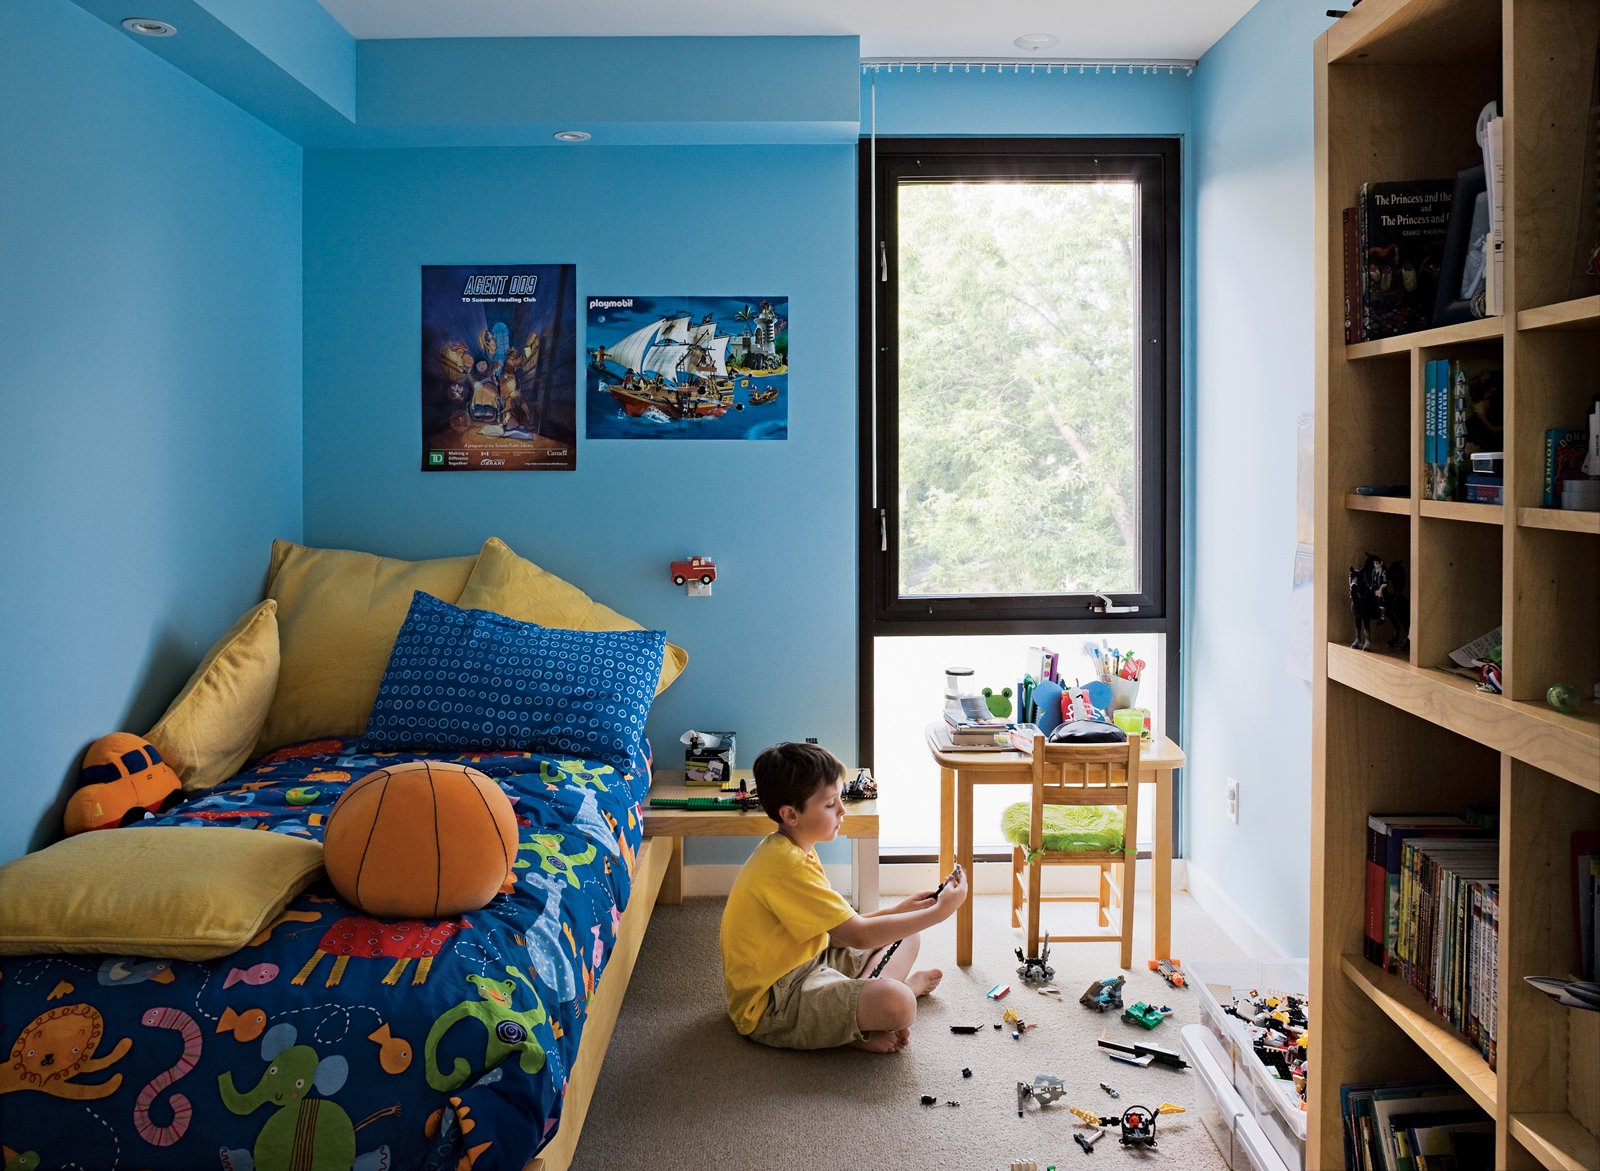 Kids, Bedroom, Boy, Pre-Teen, Desk, Bed, Night Stands, Chair, Carpet, Shelves, and Storage Griffin's room, which is exactly the same size as his brother's, gets good light from the backyard.  Kids Storage Bedroom Shelves Chair Photos from Narrow Modernist Three-Story Home in Toronto